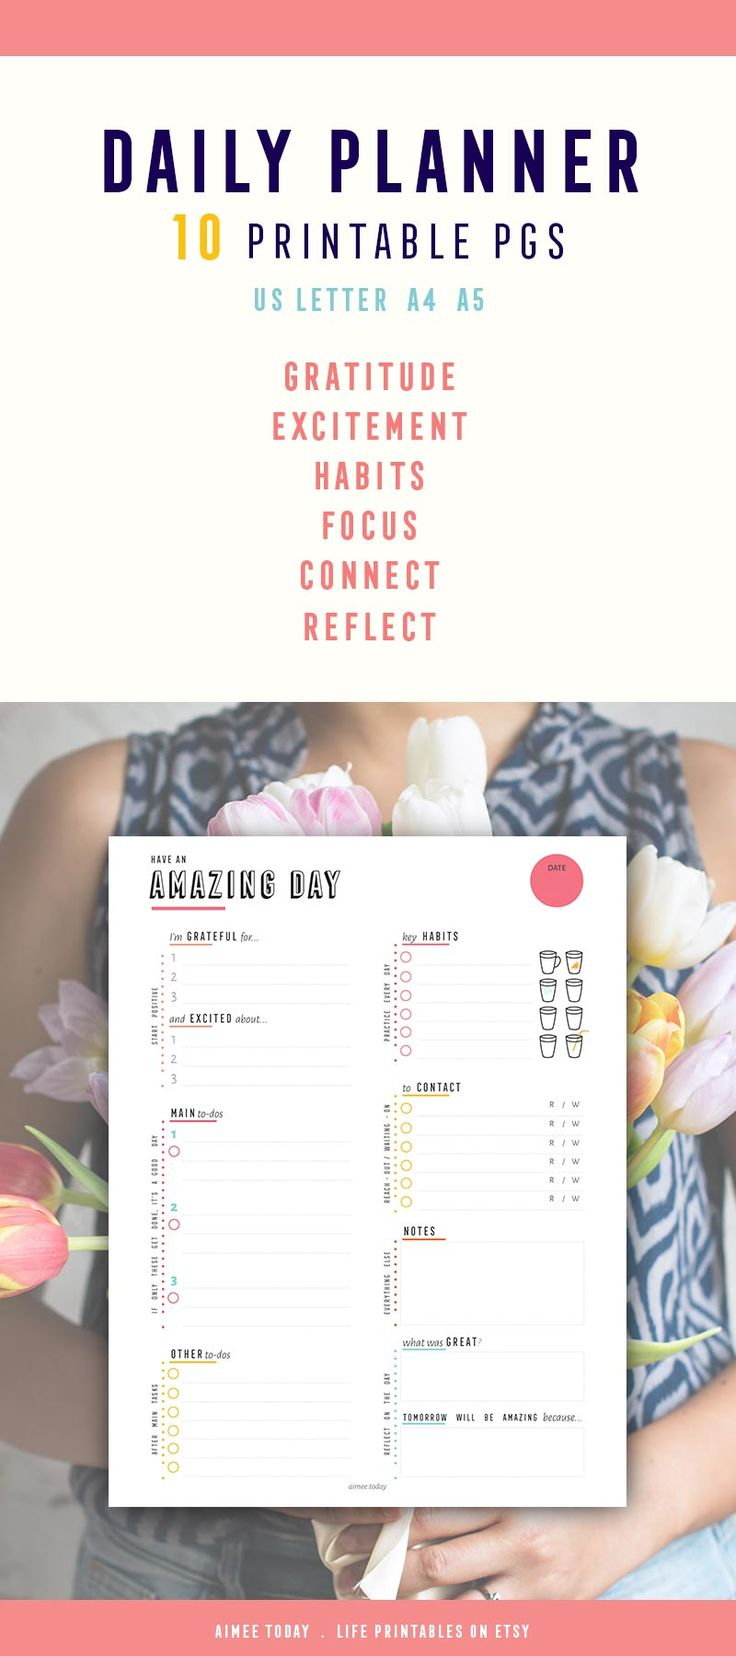 Best 25+ Daily planners ideas on Pinterest | Daily ...